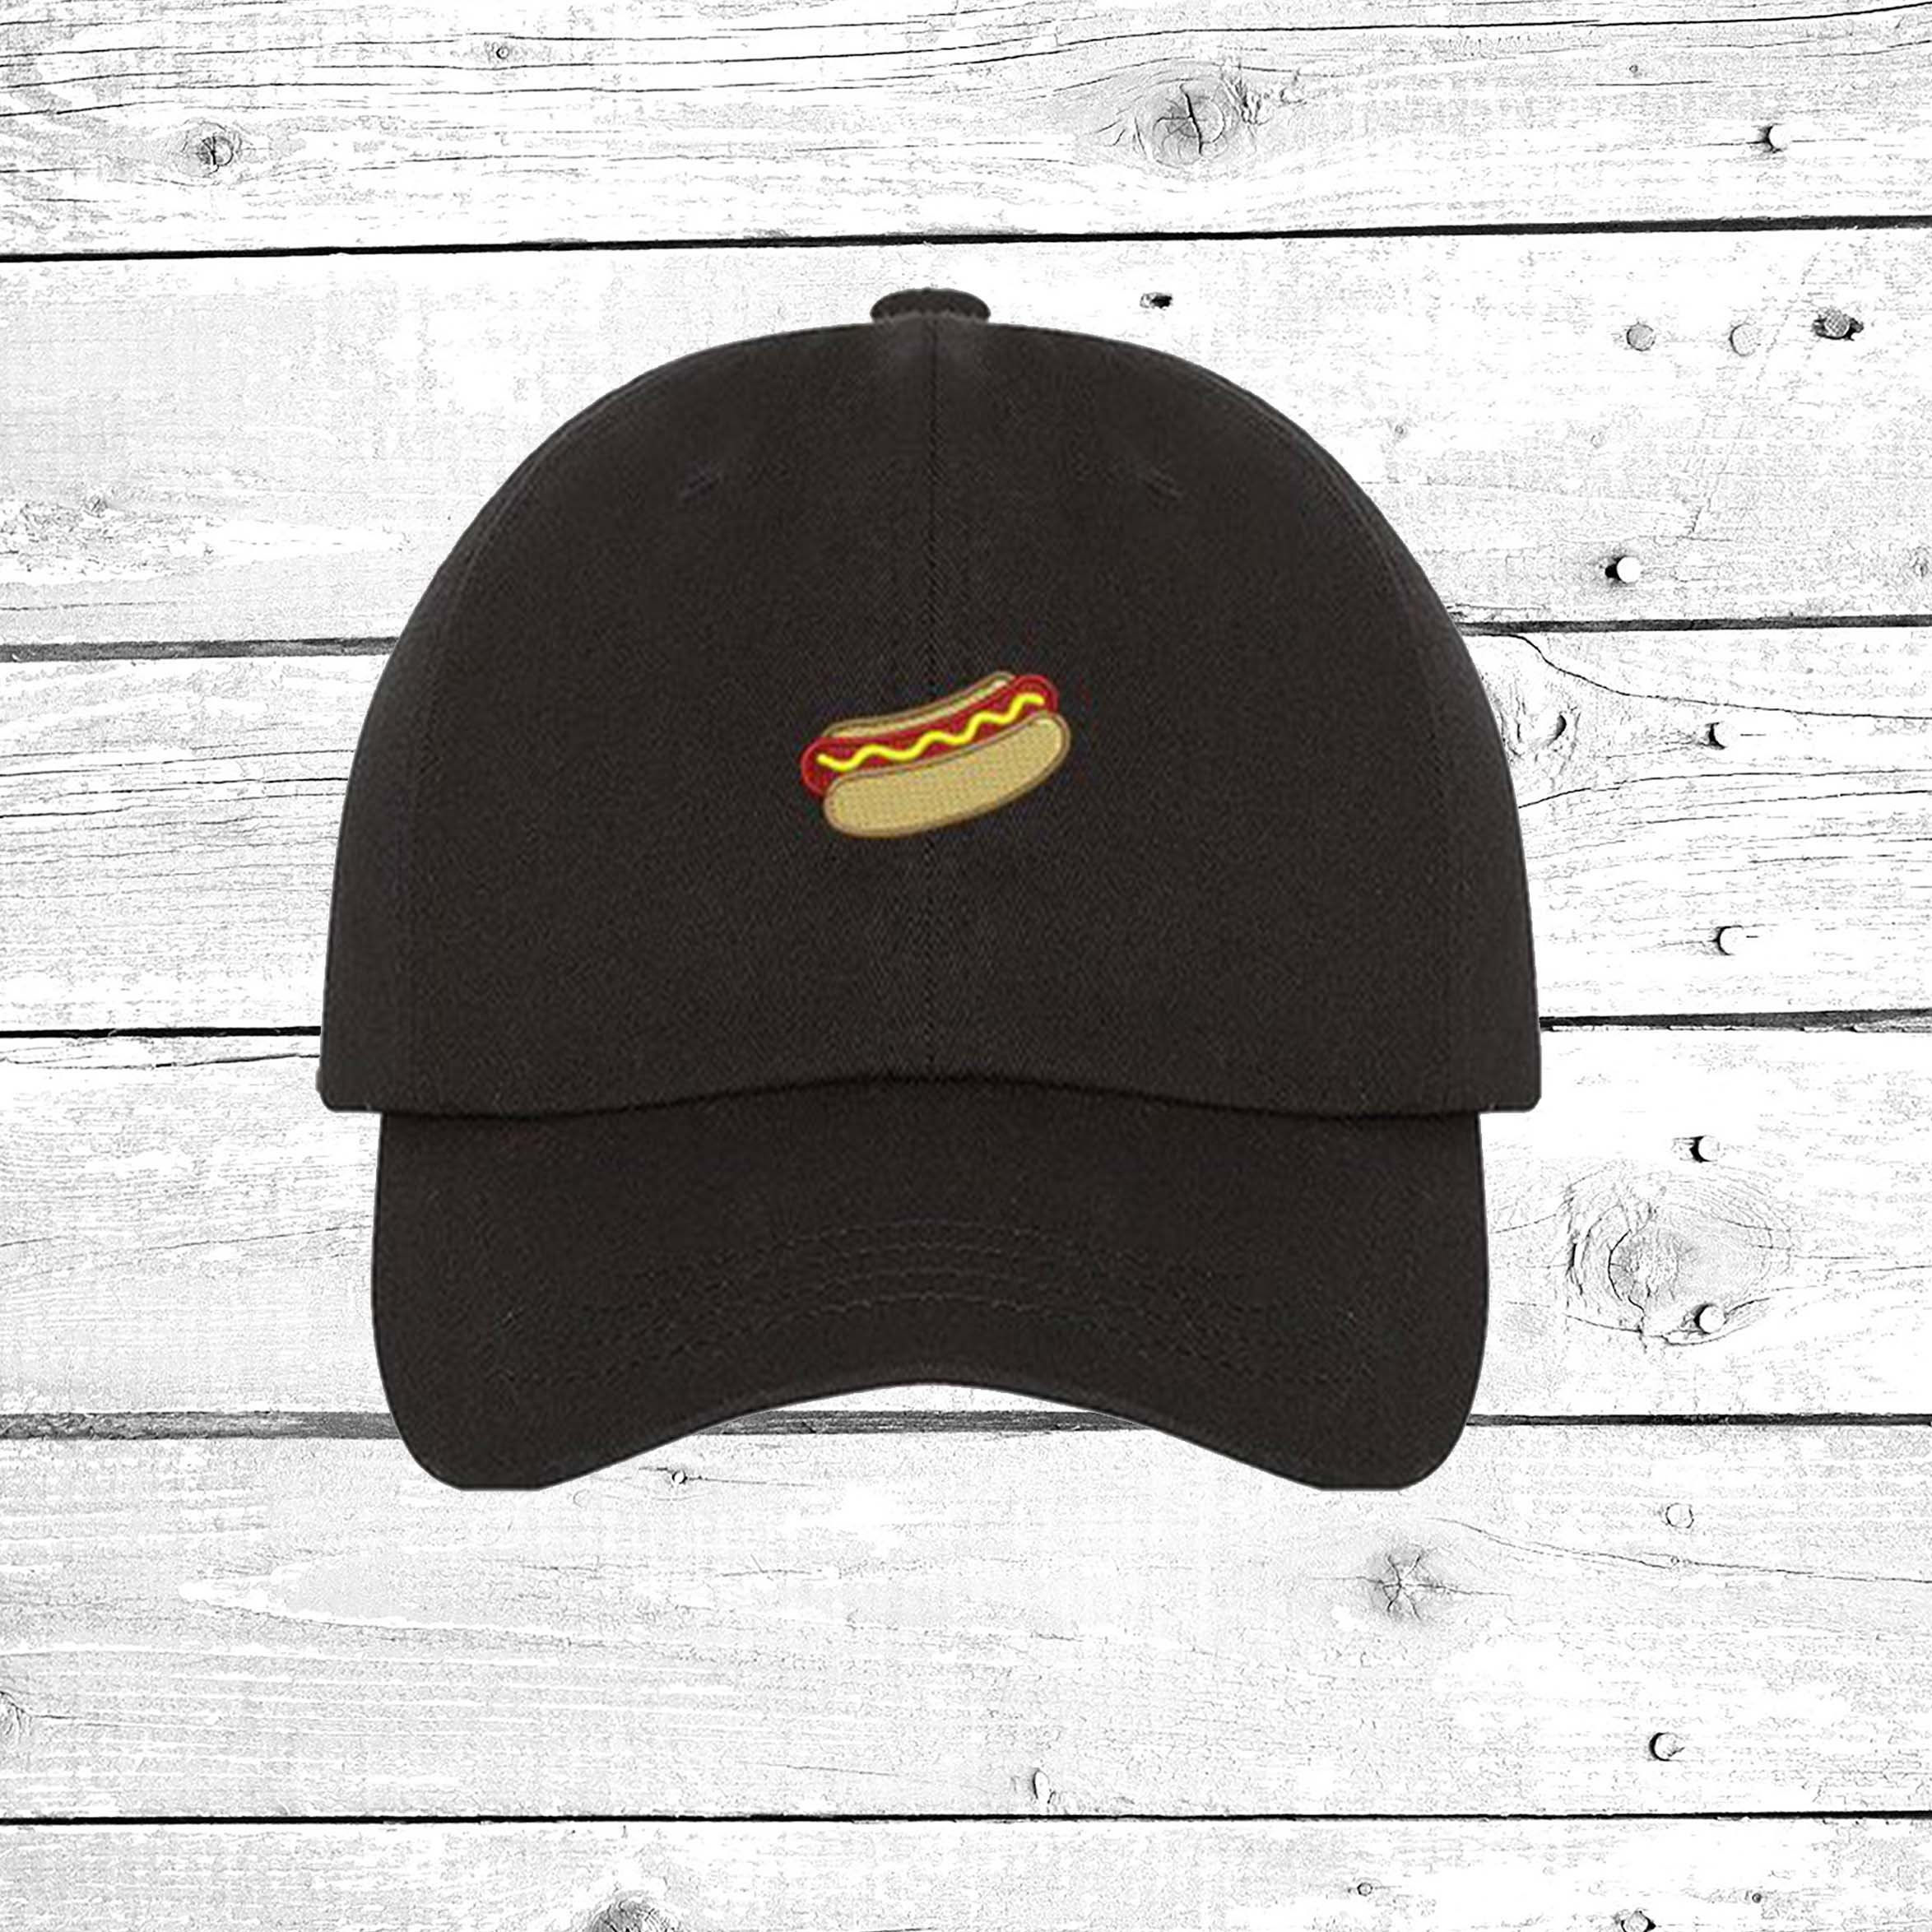 b078c41e553 Hot Dog Hats Mini Hot Dog Baseball hat Hot Dog Patch Embroidered ...